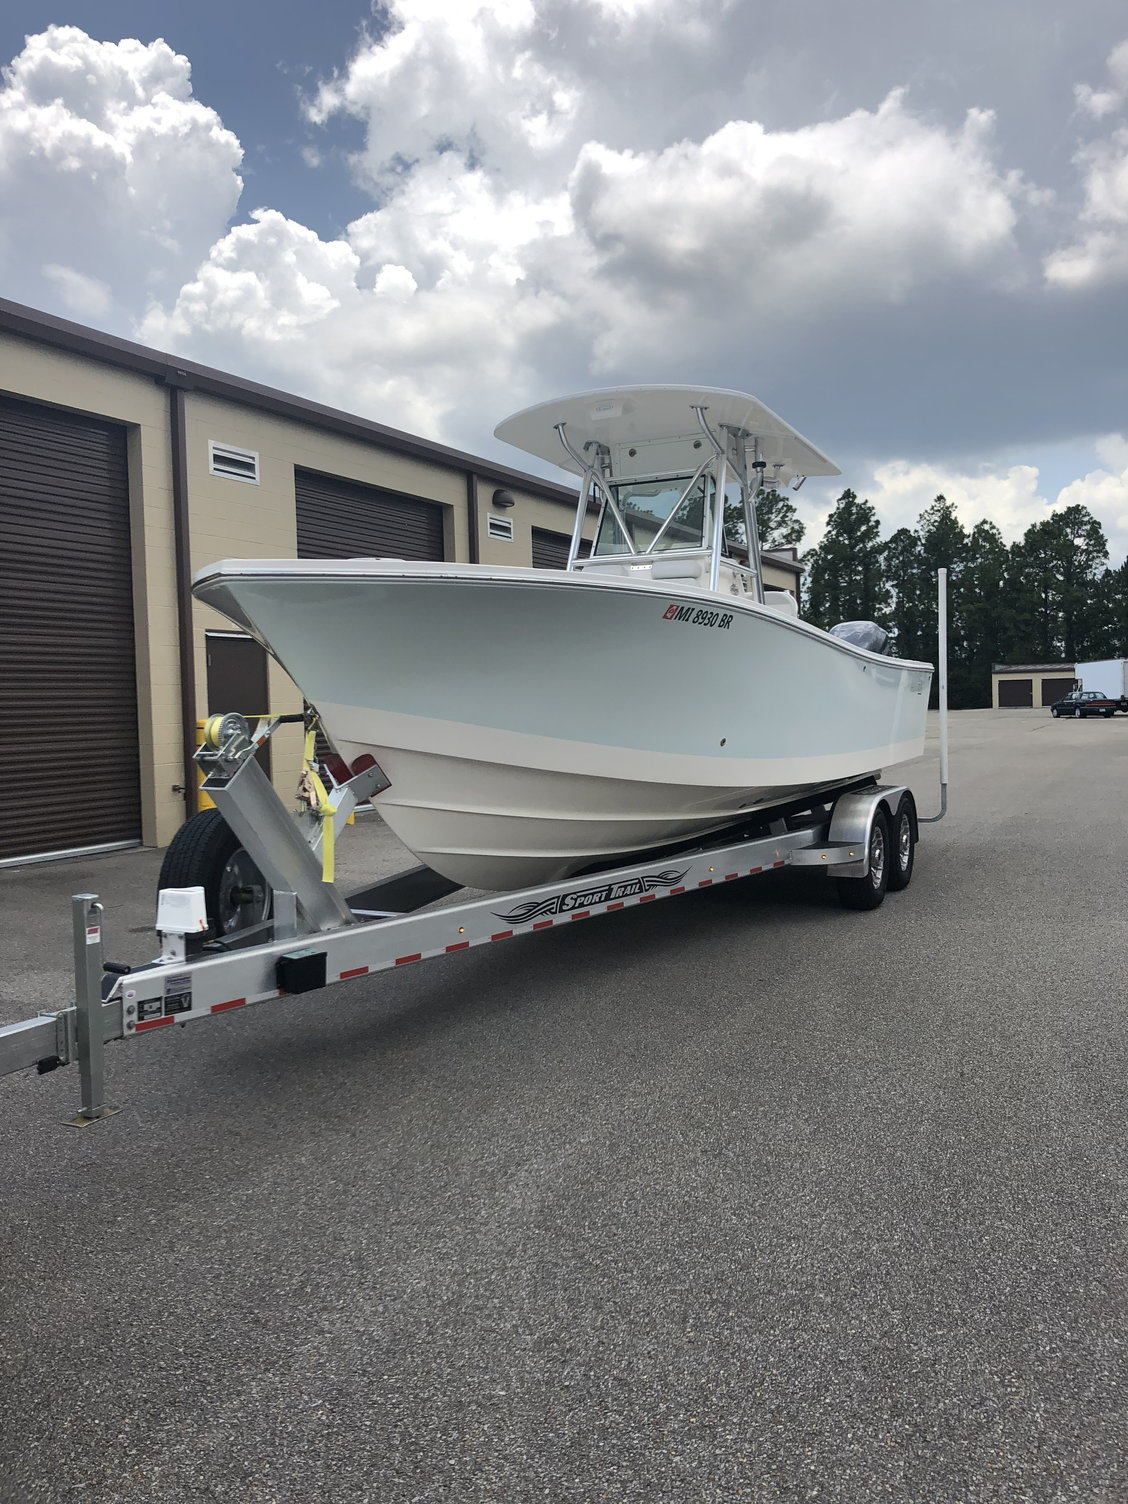 2009 26FS Regulator for Sale - The Hull Truth - Boating and